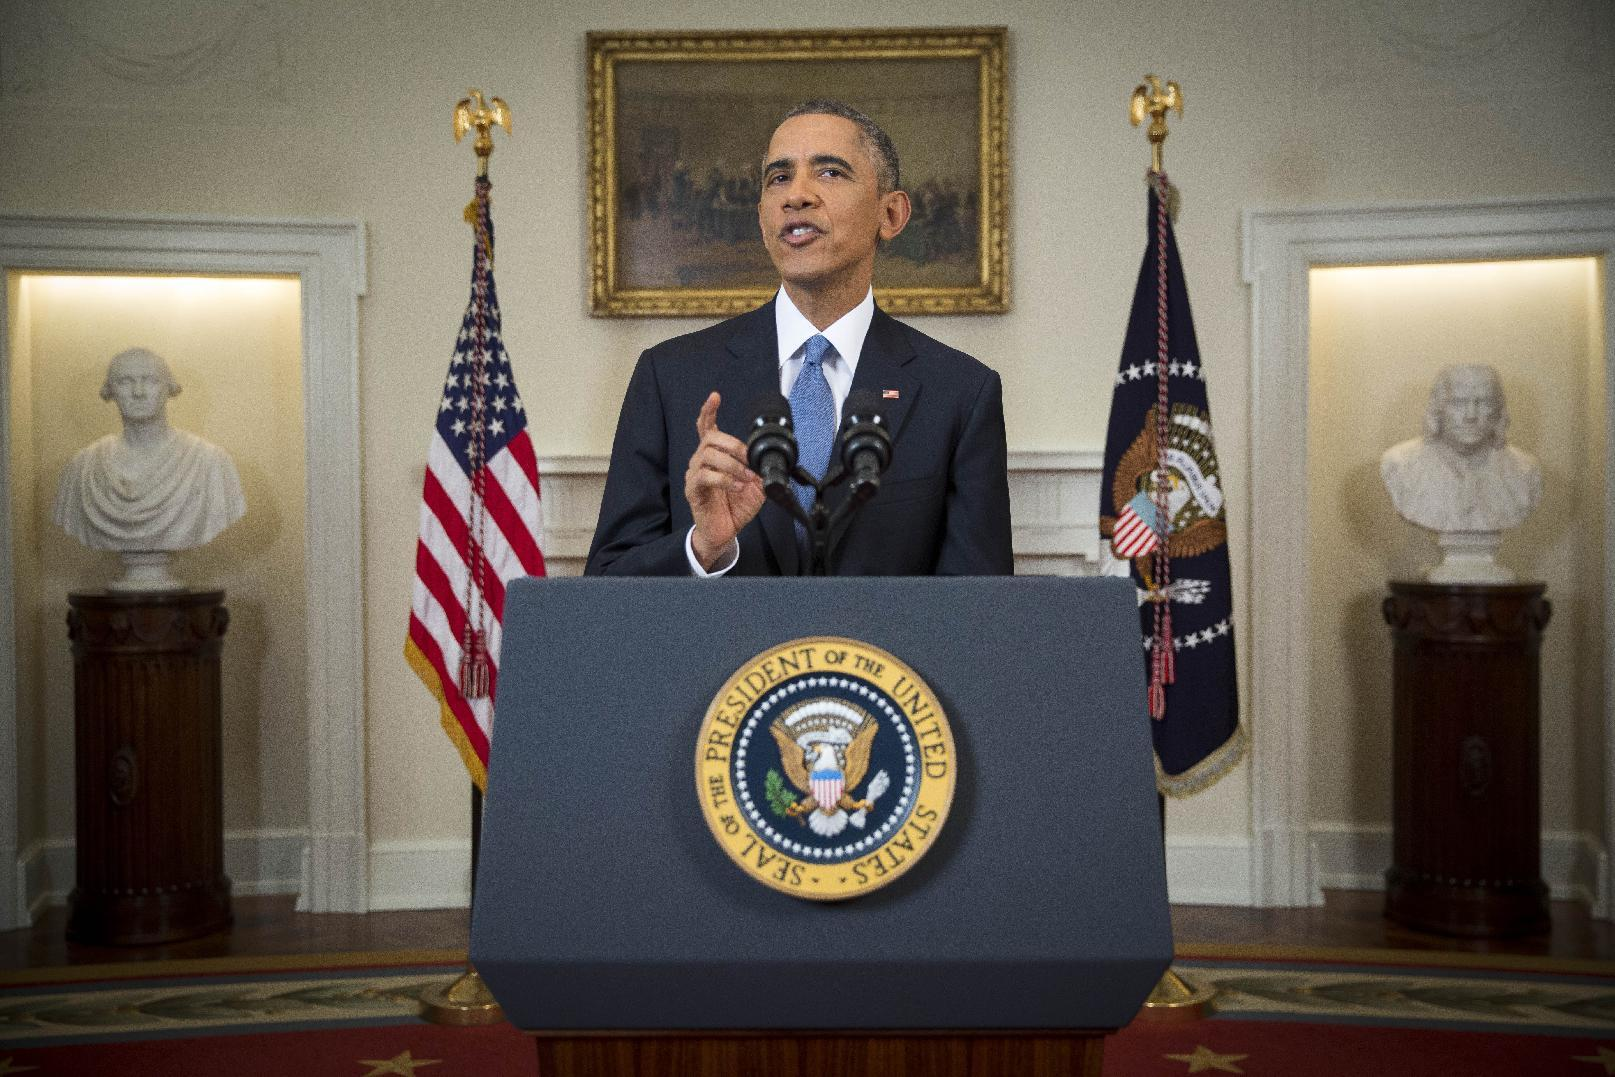 Obama takes foreign policy risk, but on his own terms